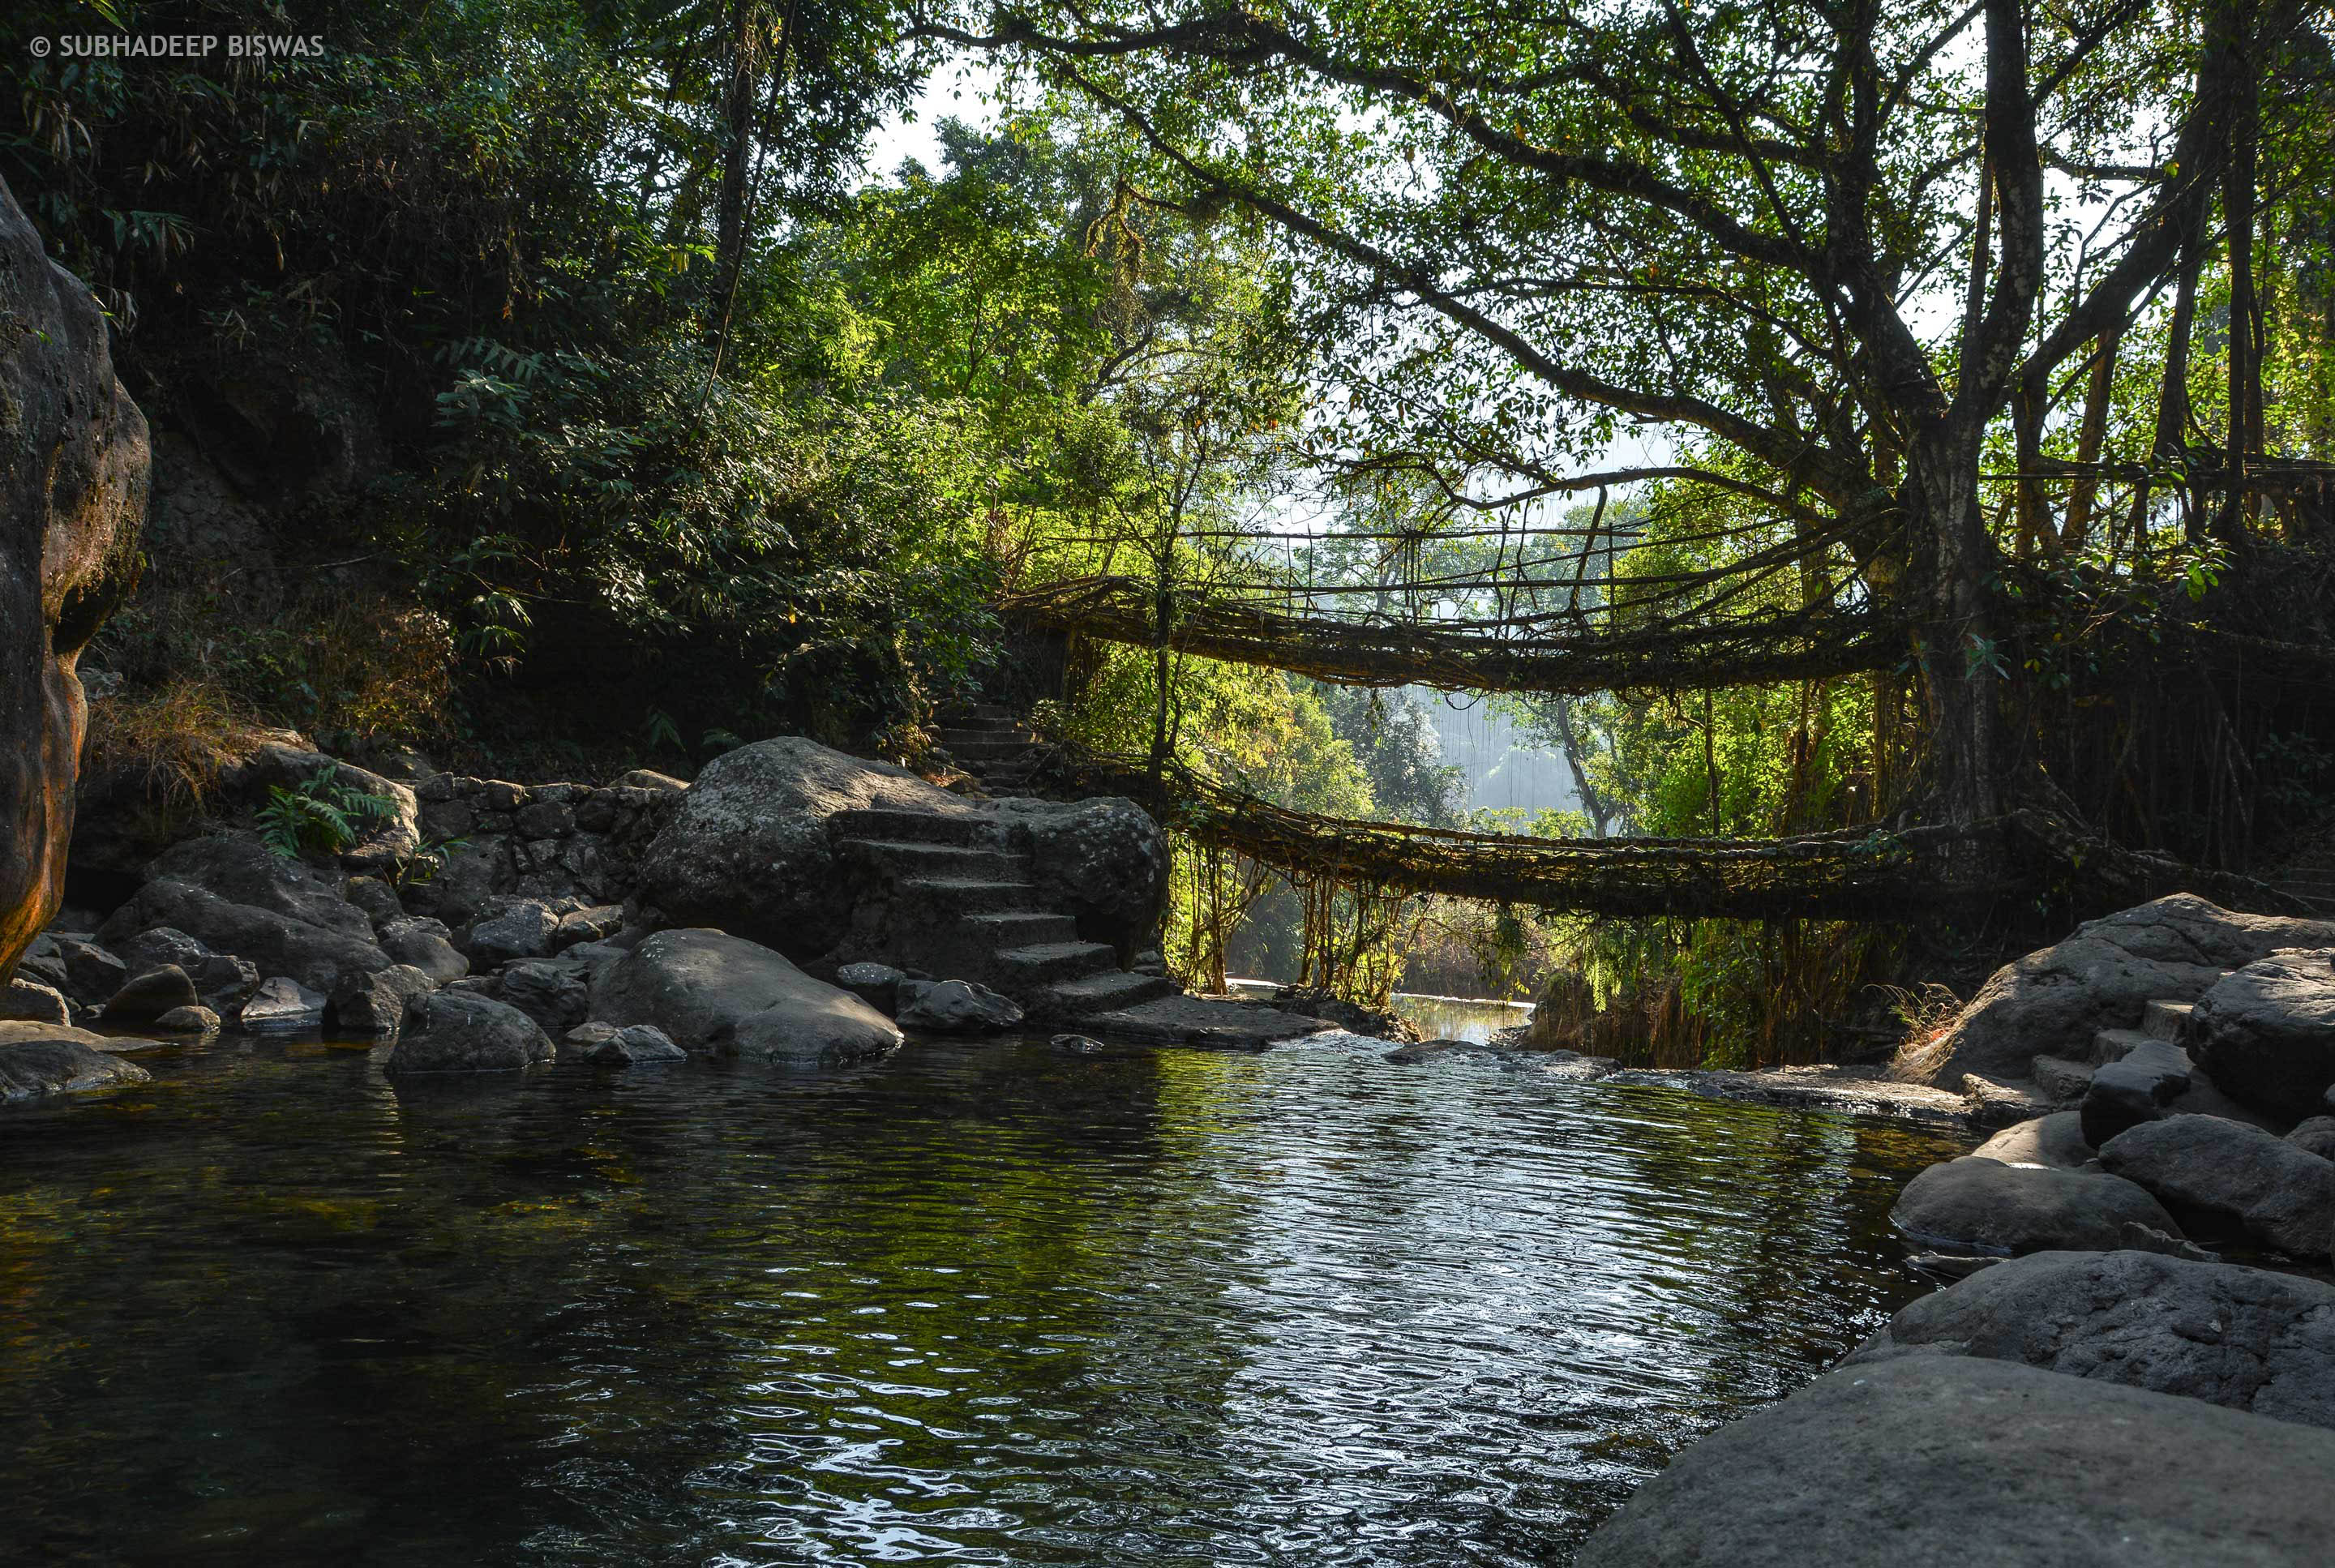 Living root bridges are created by the members of the Khasi tribe